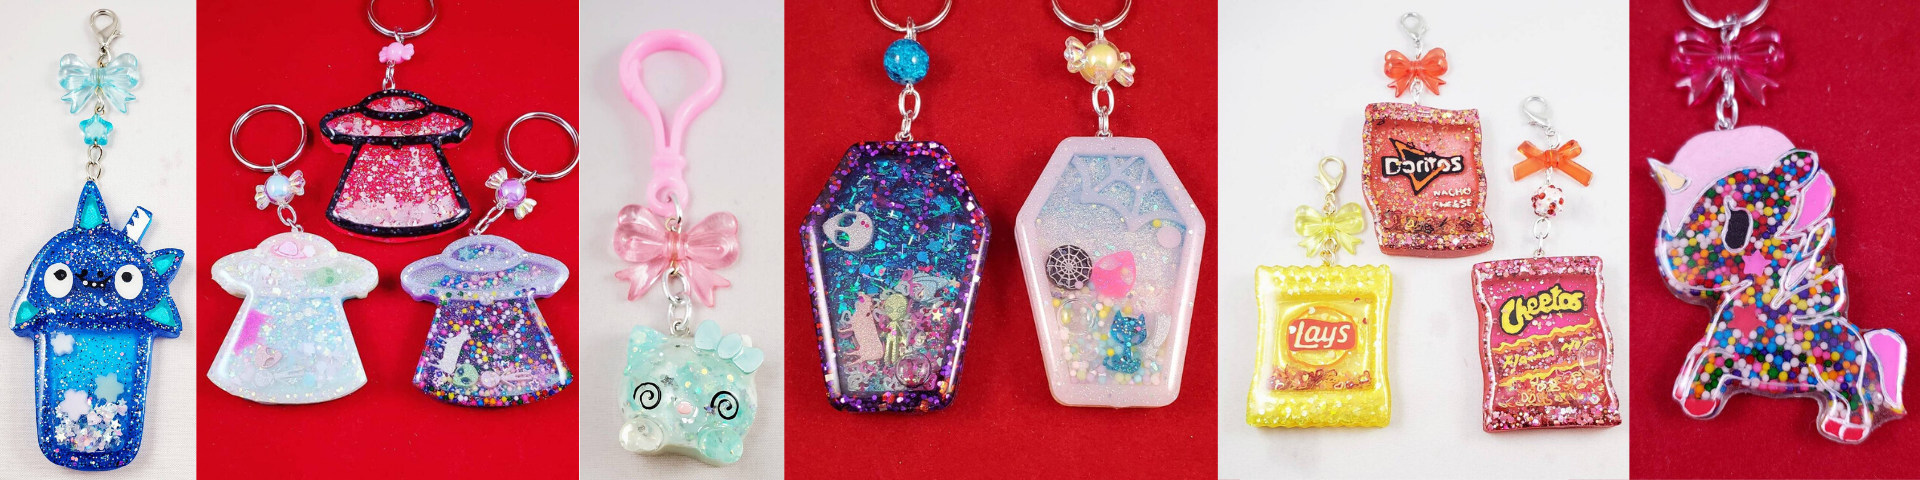 Resin charms made by Hallie Leigh